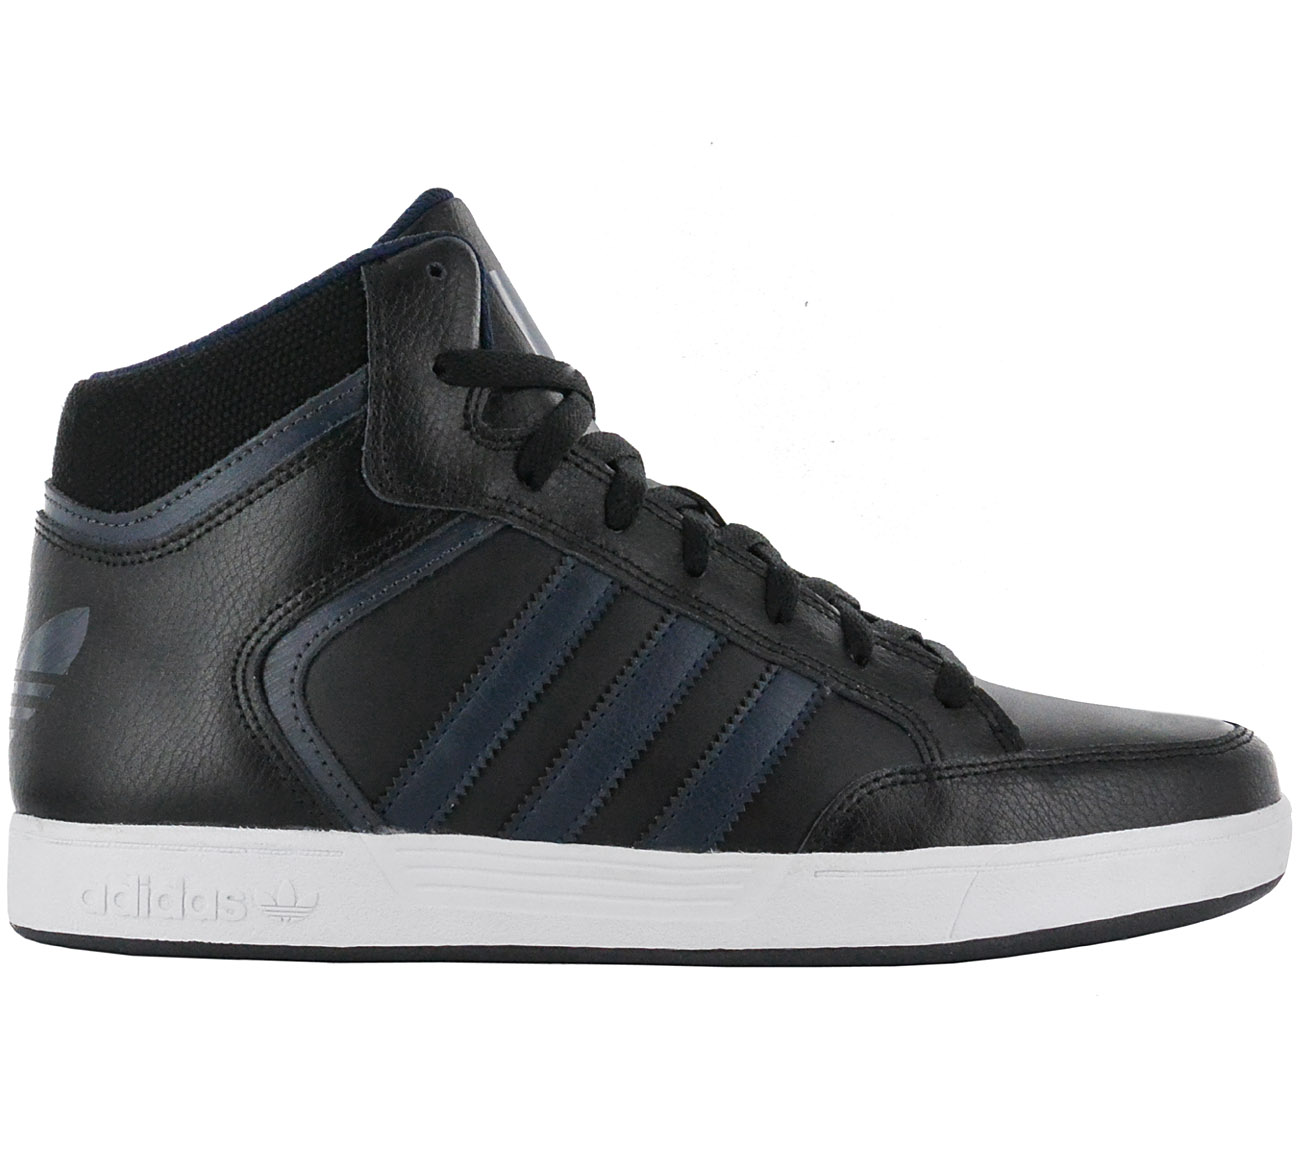 b9698712d97 Adidas Originals Varial mid Men's Sneakers Shoes Leather Black ...